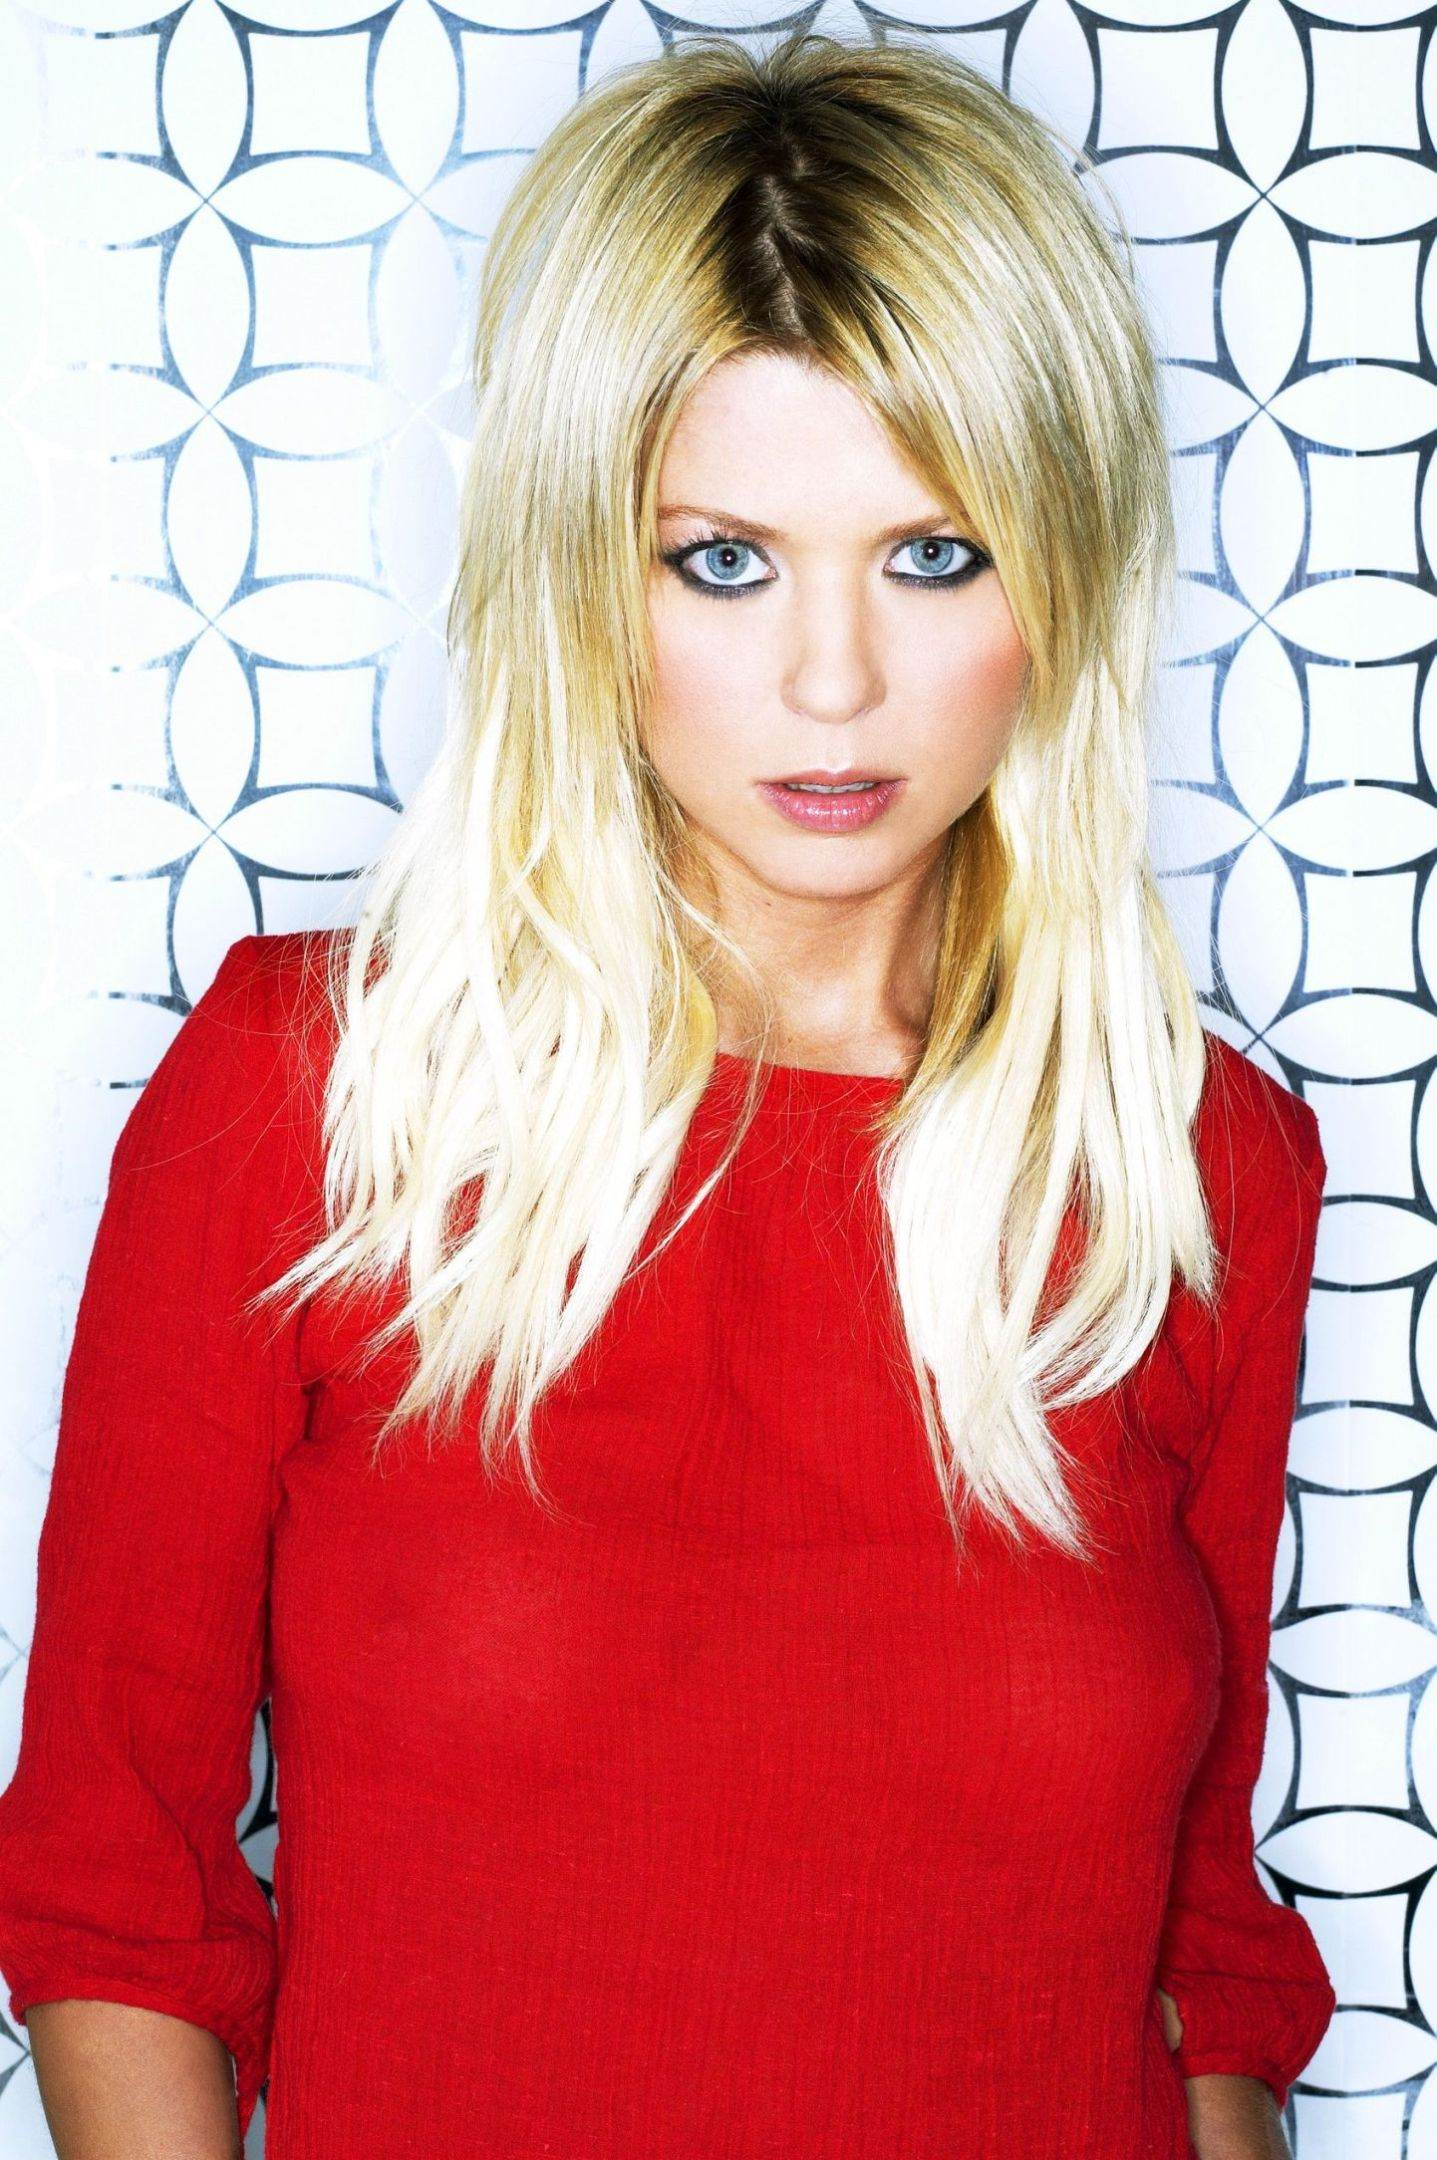 Tara Reid Nude - Page 23 Pictures, Naked, Oops, Topless -8198